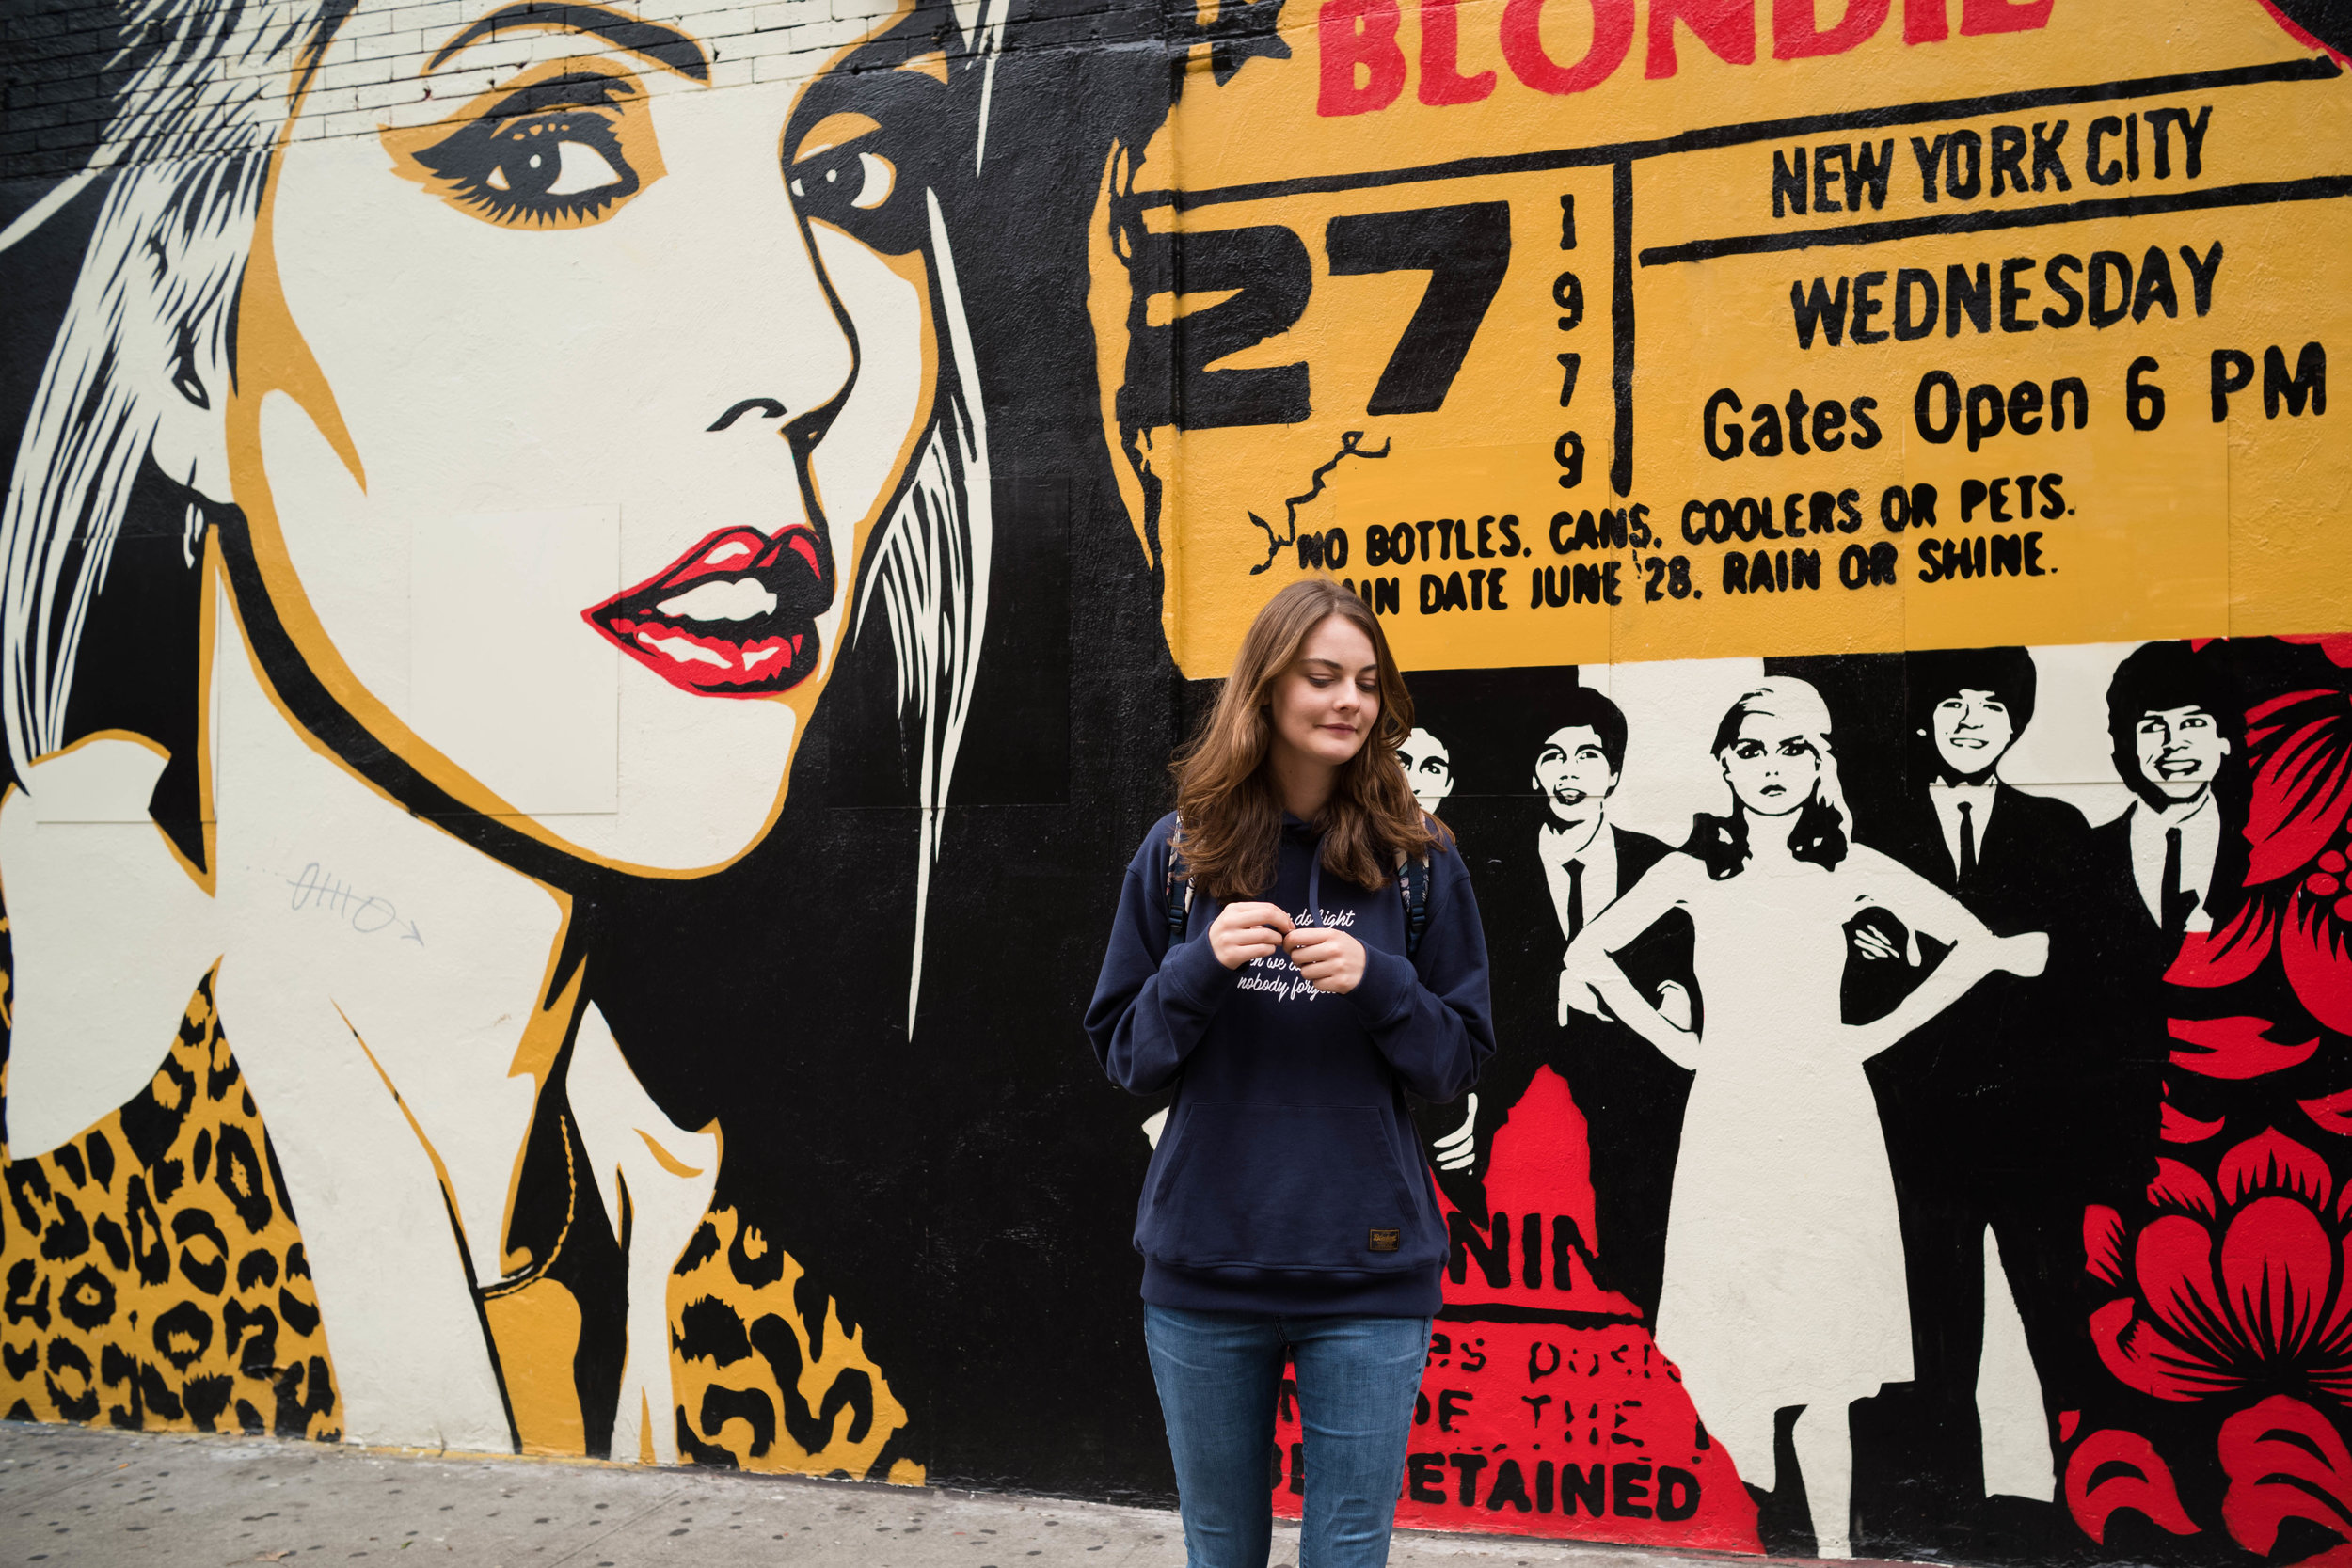 This wasn't here before. My new favorite mural in the city... at the Bowery across where the famed CBGB used to be. I ❤️ Debbie Harry and Blondie!